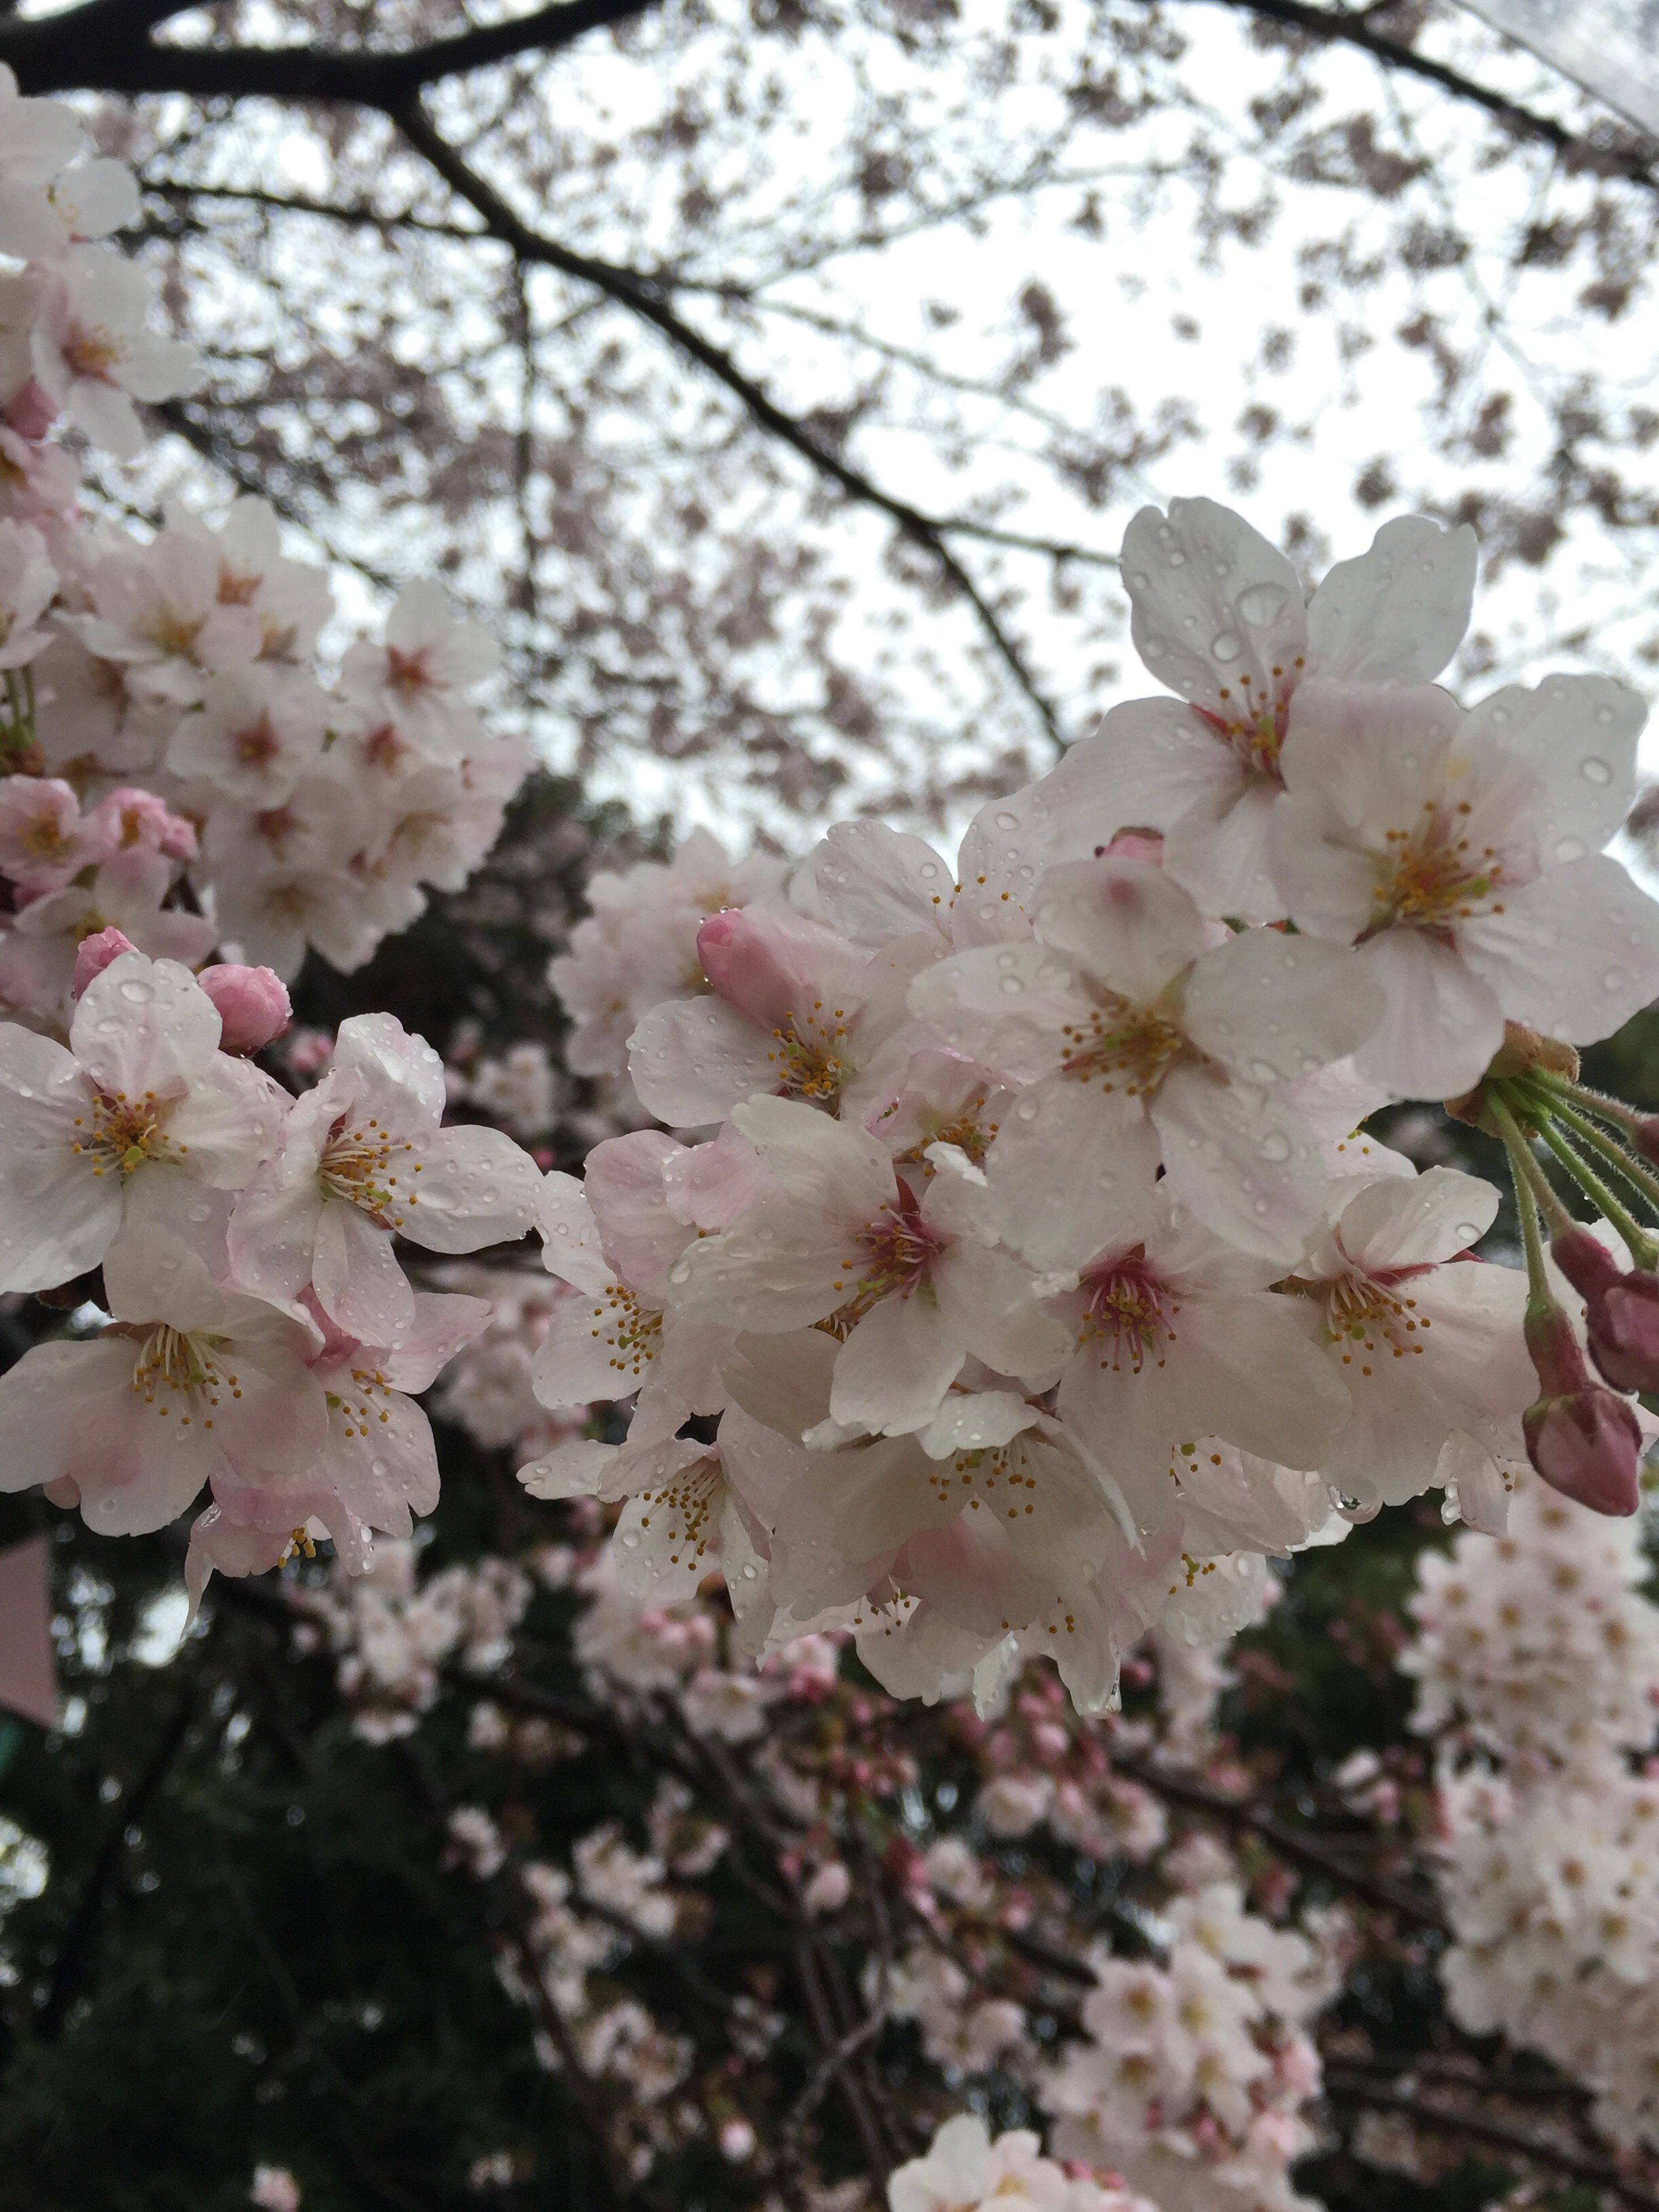 flower, freshness, fragility, cherry blossom, growth, branch, tree, petal, cherry tree, beauty in nature, blossom, nature, pink color, blooming, in bloom, springtime, flower head, close-up, low angle view, fruit tree